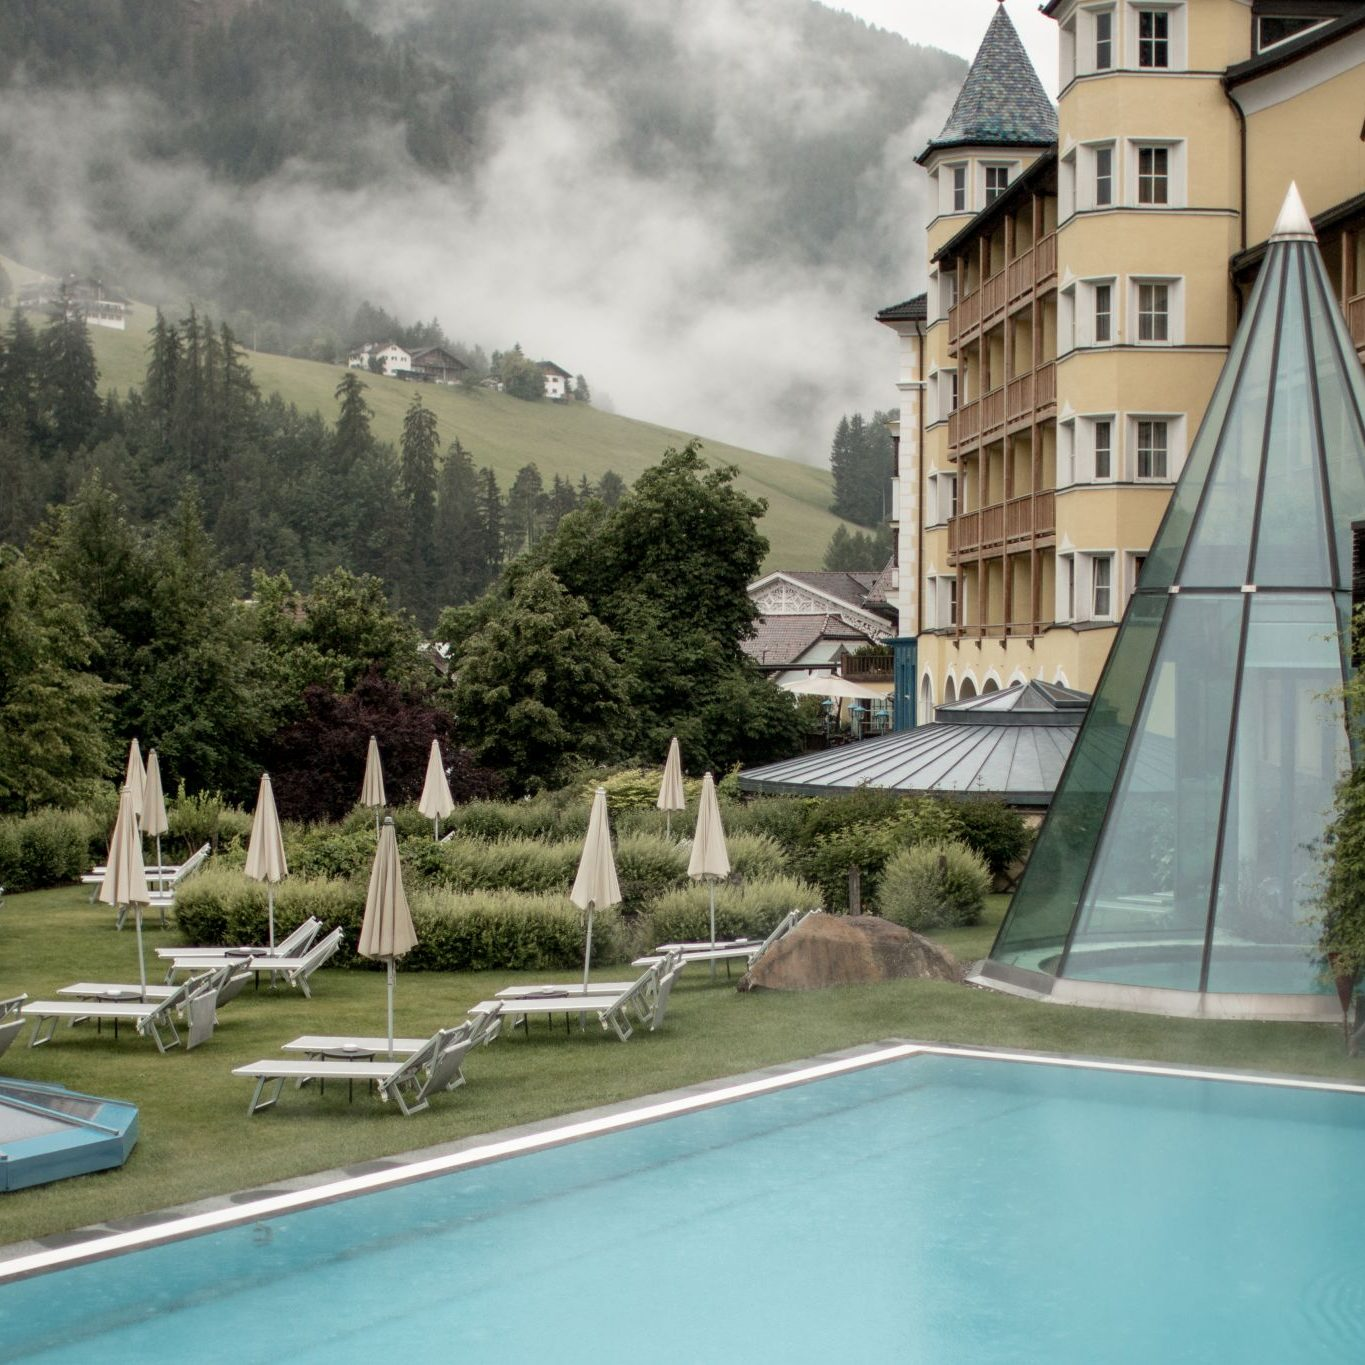 Adler Dolomites Hotel Ortisei Italy Hotel Review Exterior poolside clouds glass pyramid